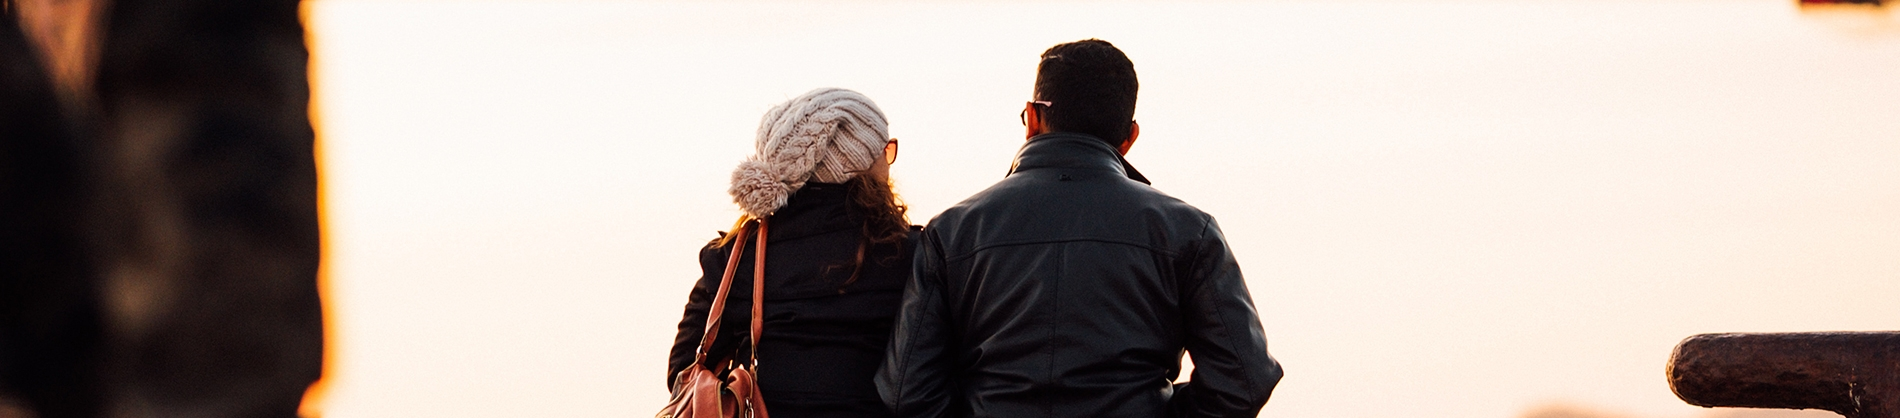 A man and woman sat together looking outwards